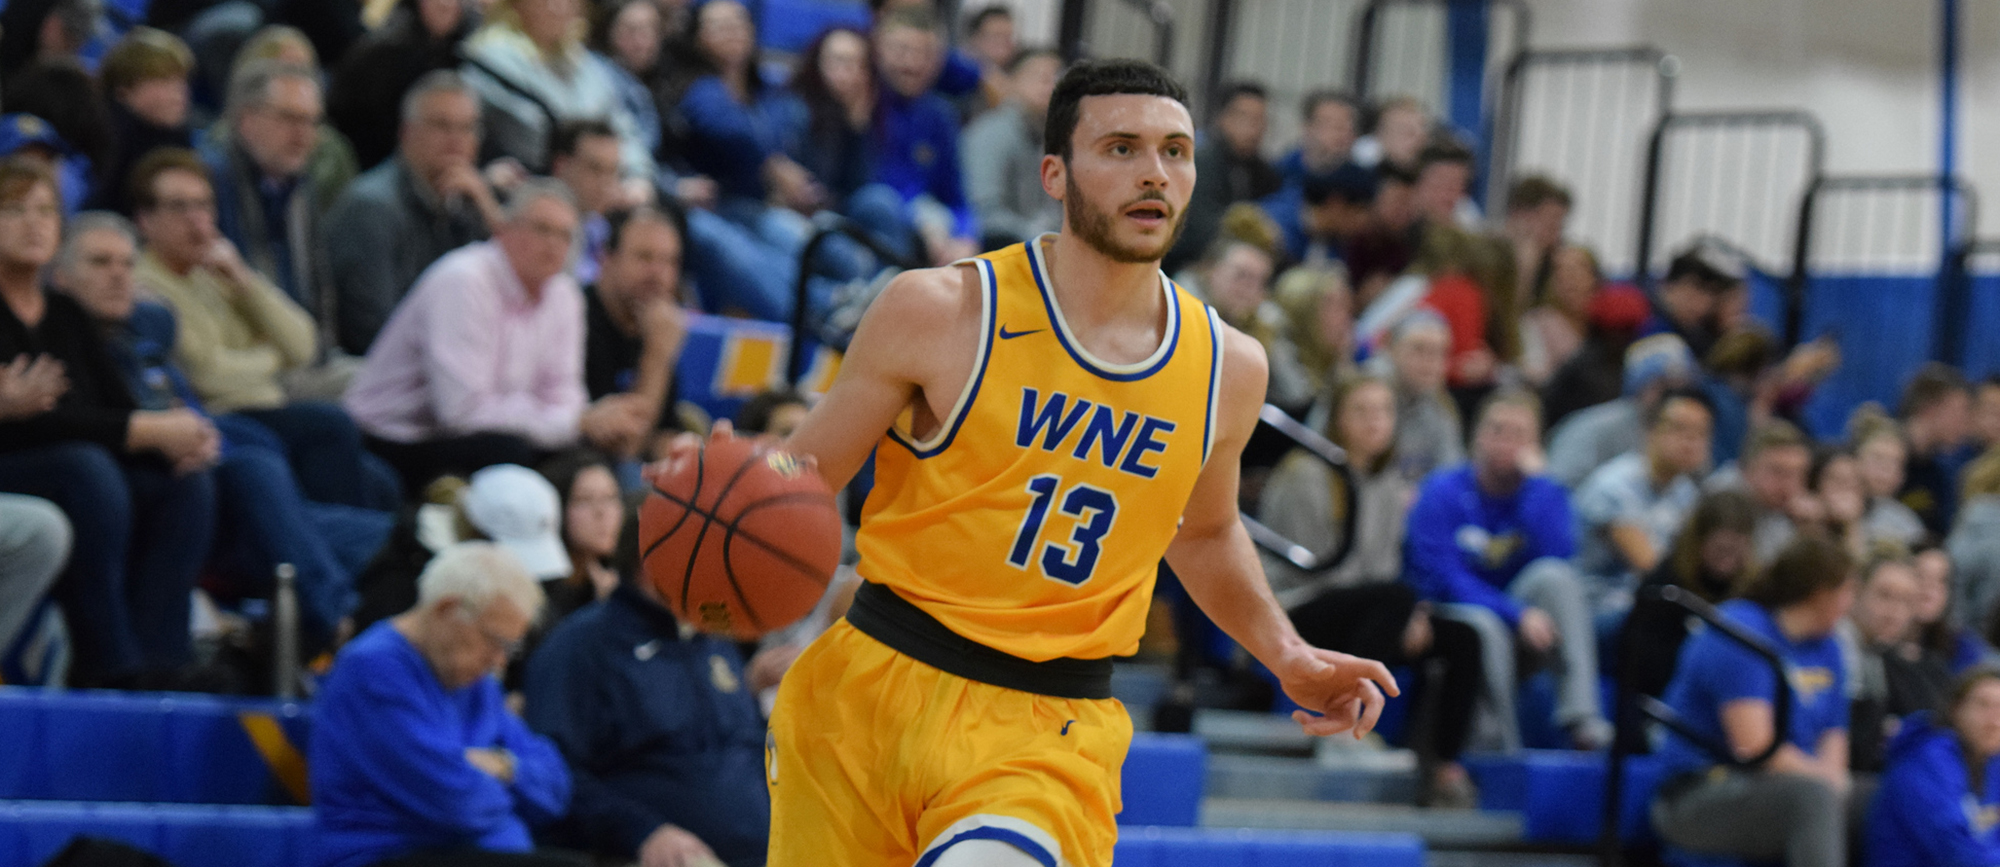 Alex Sikorski scored a game-high 21 points in Western New England's 104-88 win over UNE on Saturday. (Photo by Rachael Margossian)